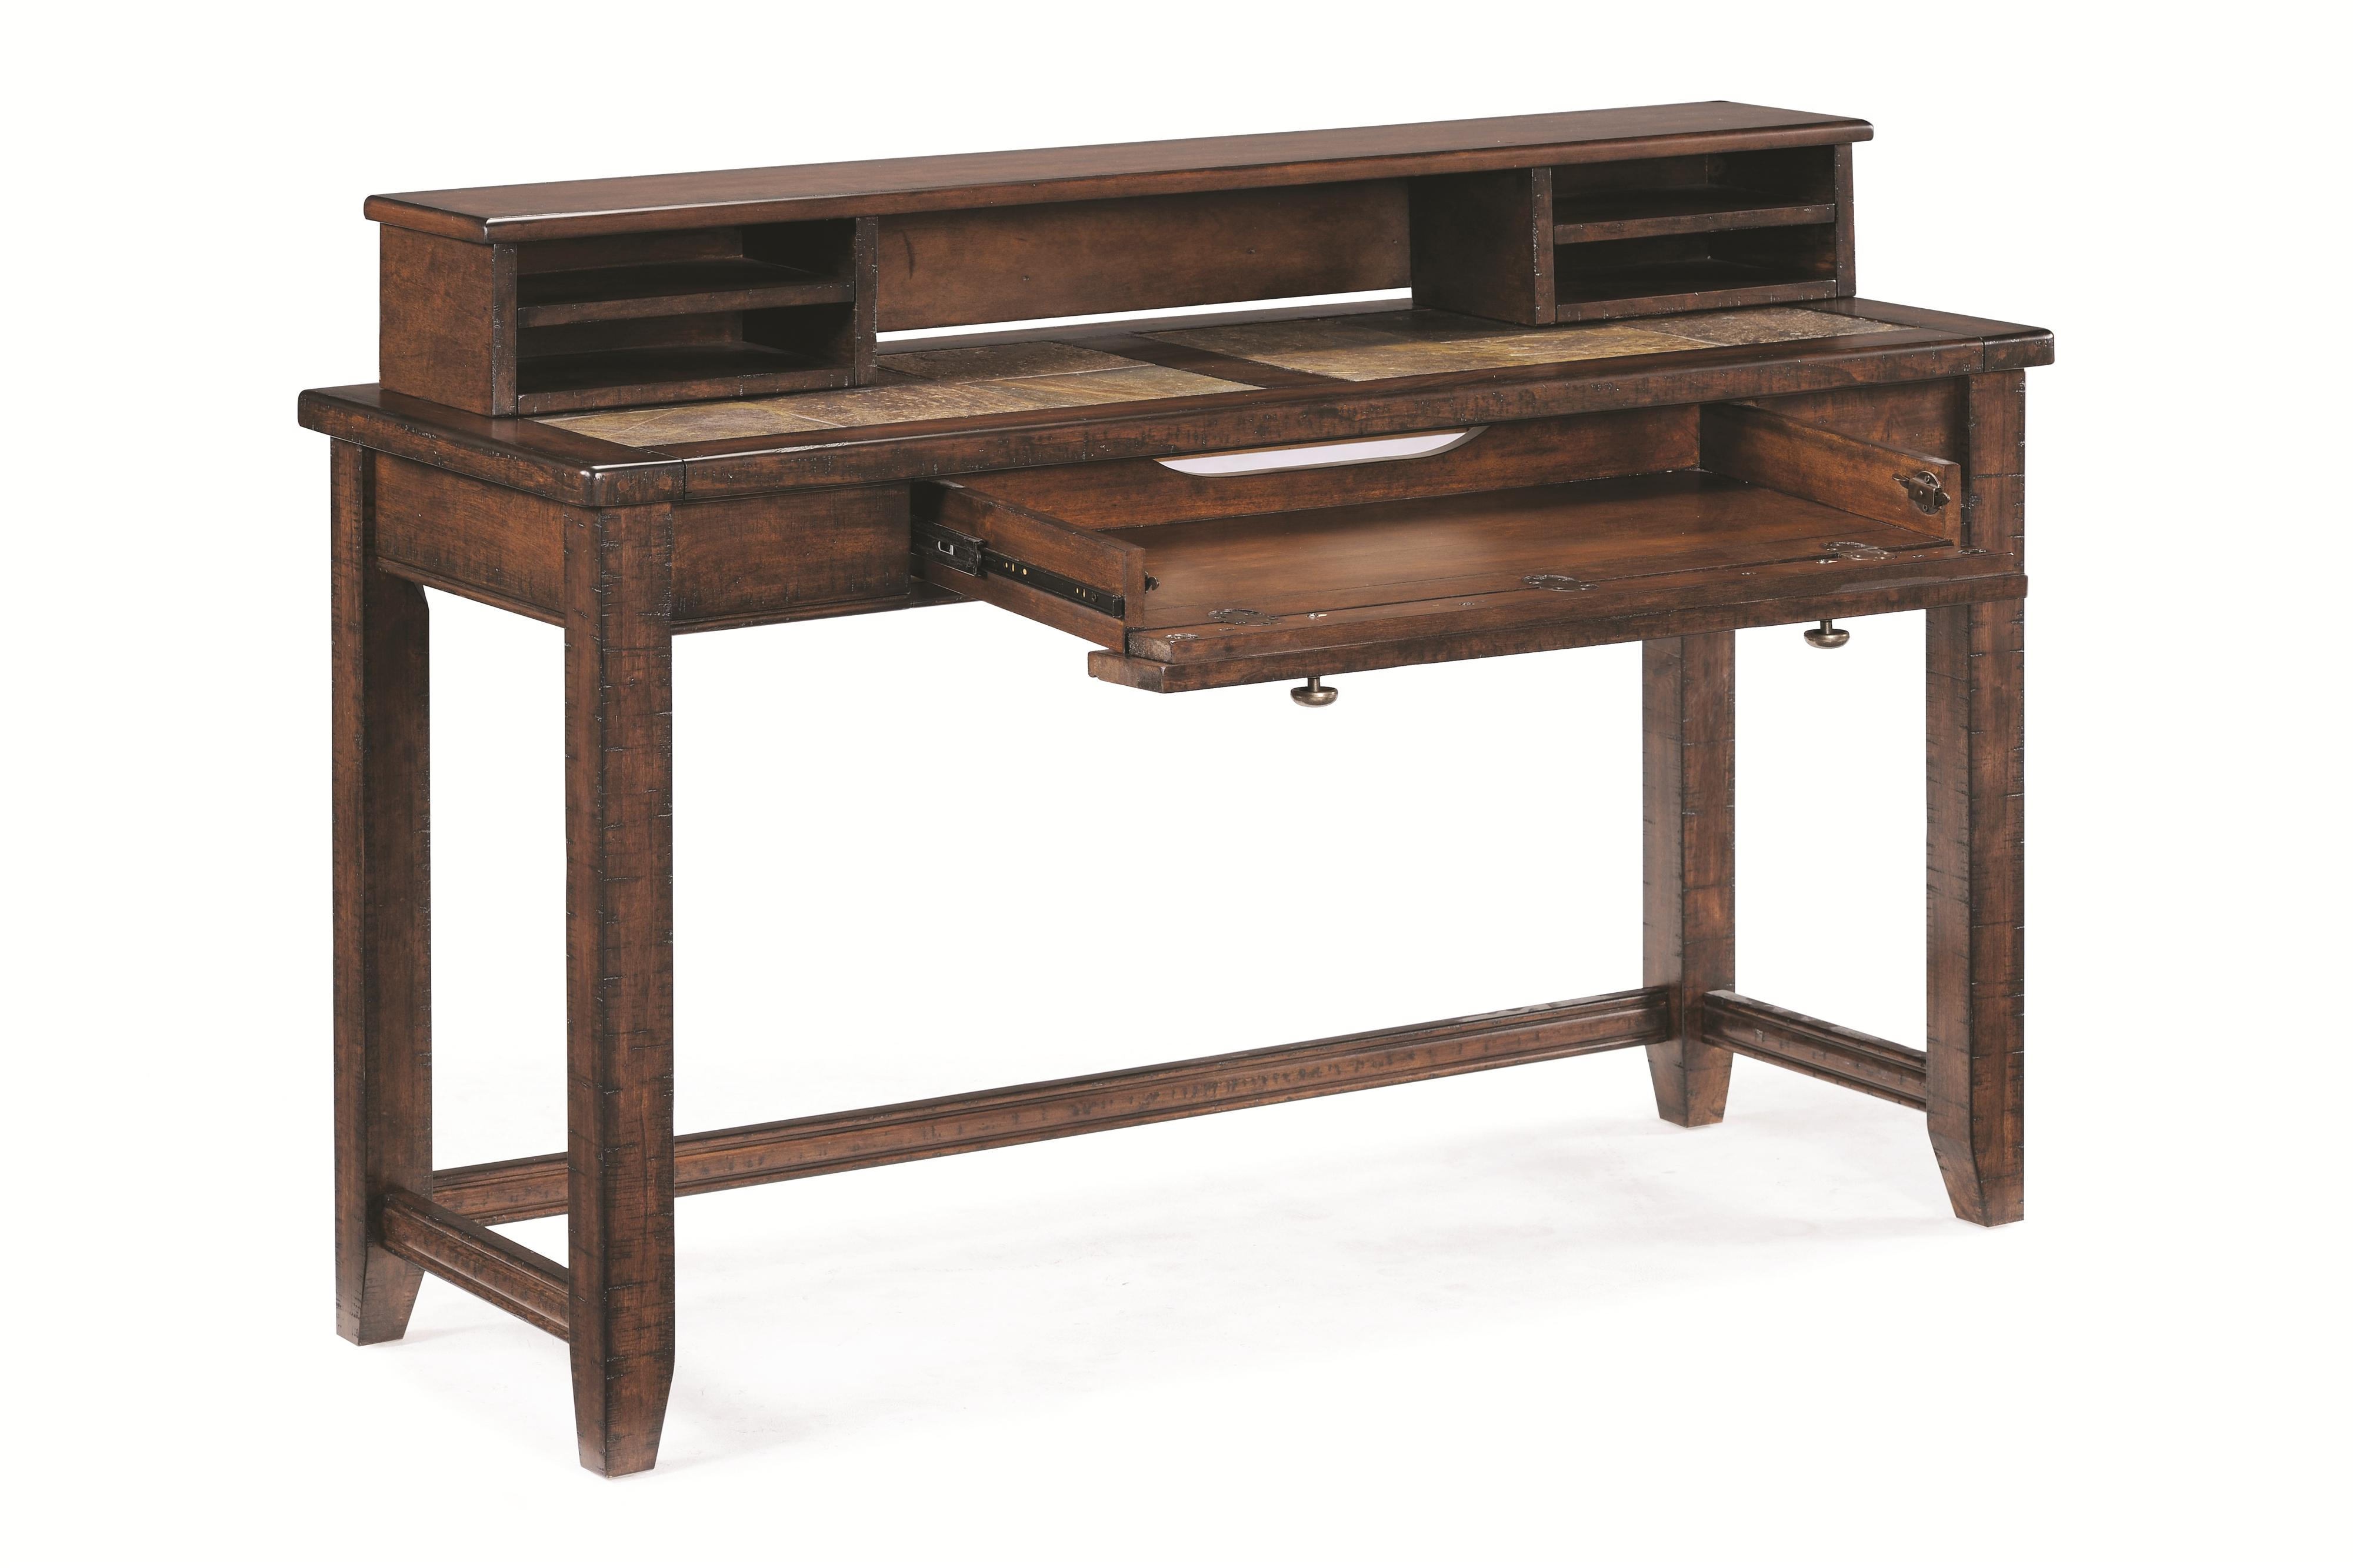 Sofa Table Desk By Magnussen Home  Wolf And Gardiner Wolf. Laptop Pillow Desk Walmart. Futuristic Desk Lamp. Valpo It Help Desk. Cool Table Lamps. Antique Brass Drawer Knobs. Coffee Tables For Sectionals. Black Vanity Makeup Desk. Recliner Tables